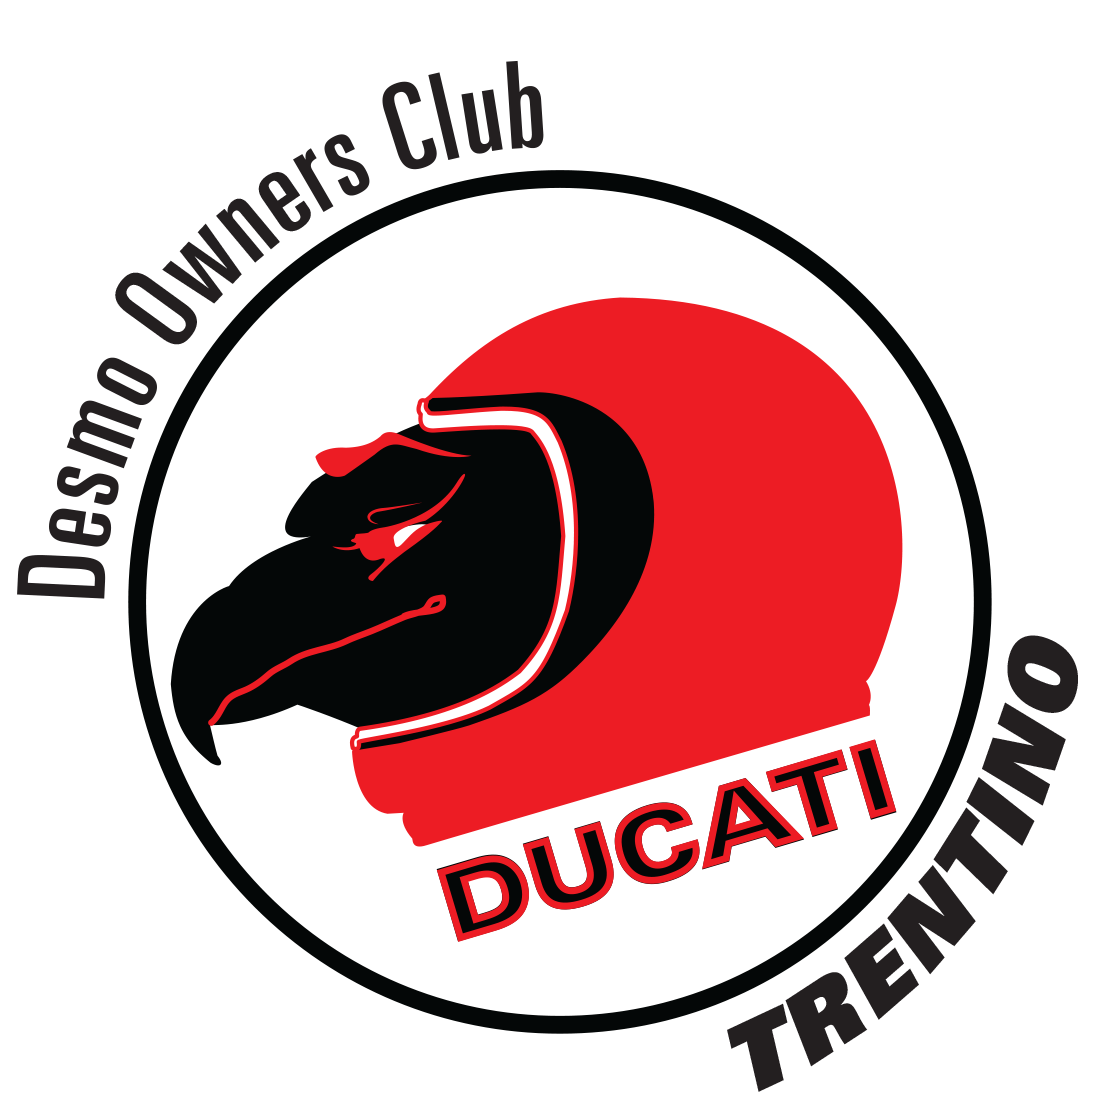 Desmo Owners Club Trentino